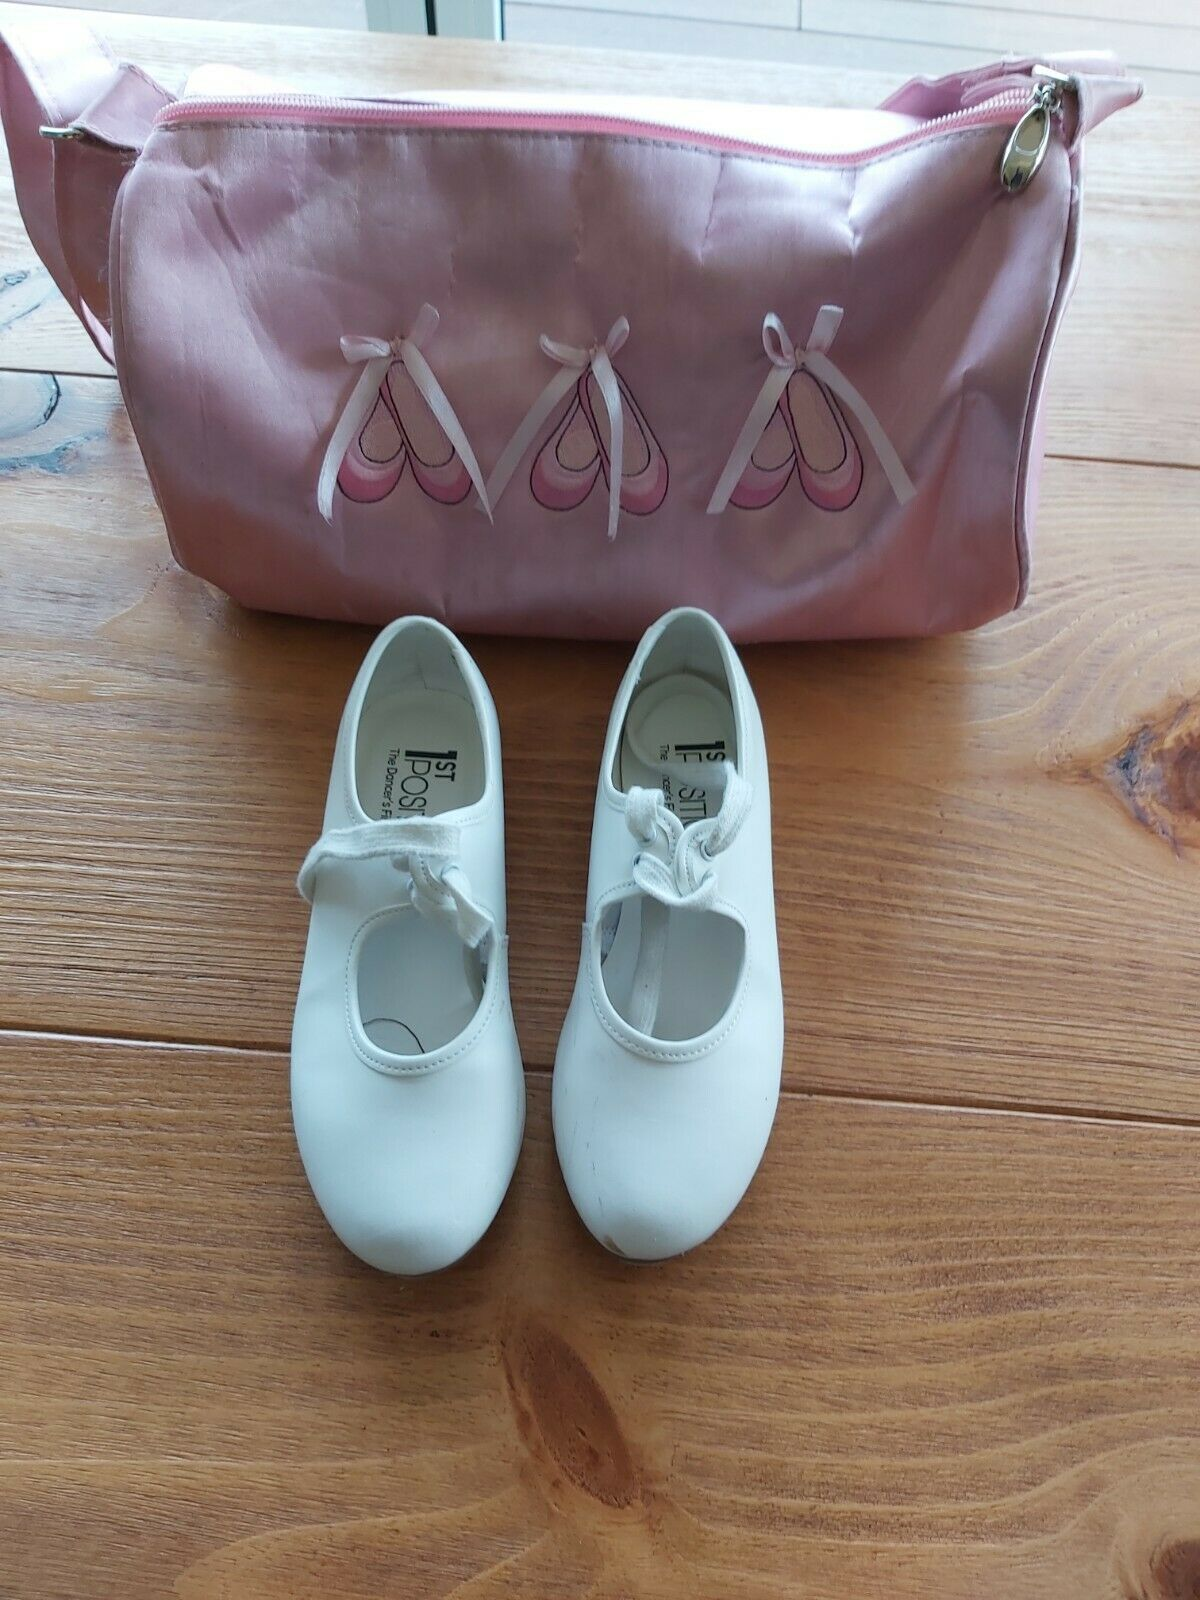 First Position Tap Shoes - UK Size 13 (Good Condition + Free Shoe Bag)